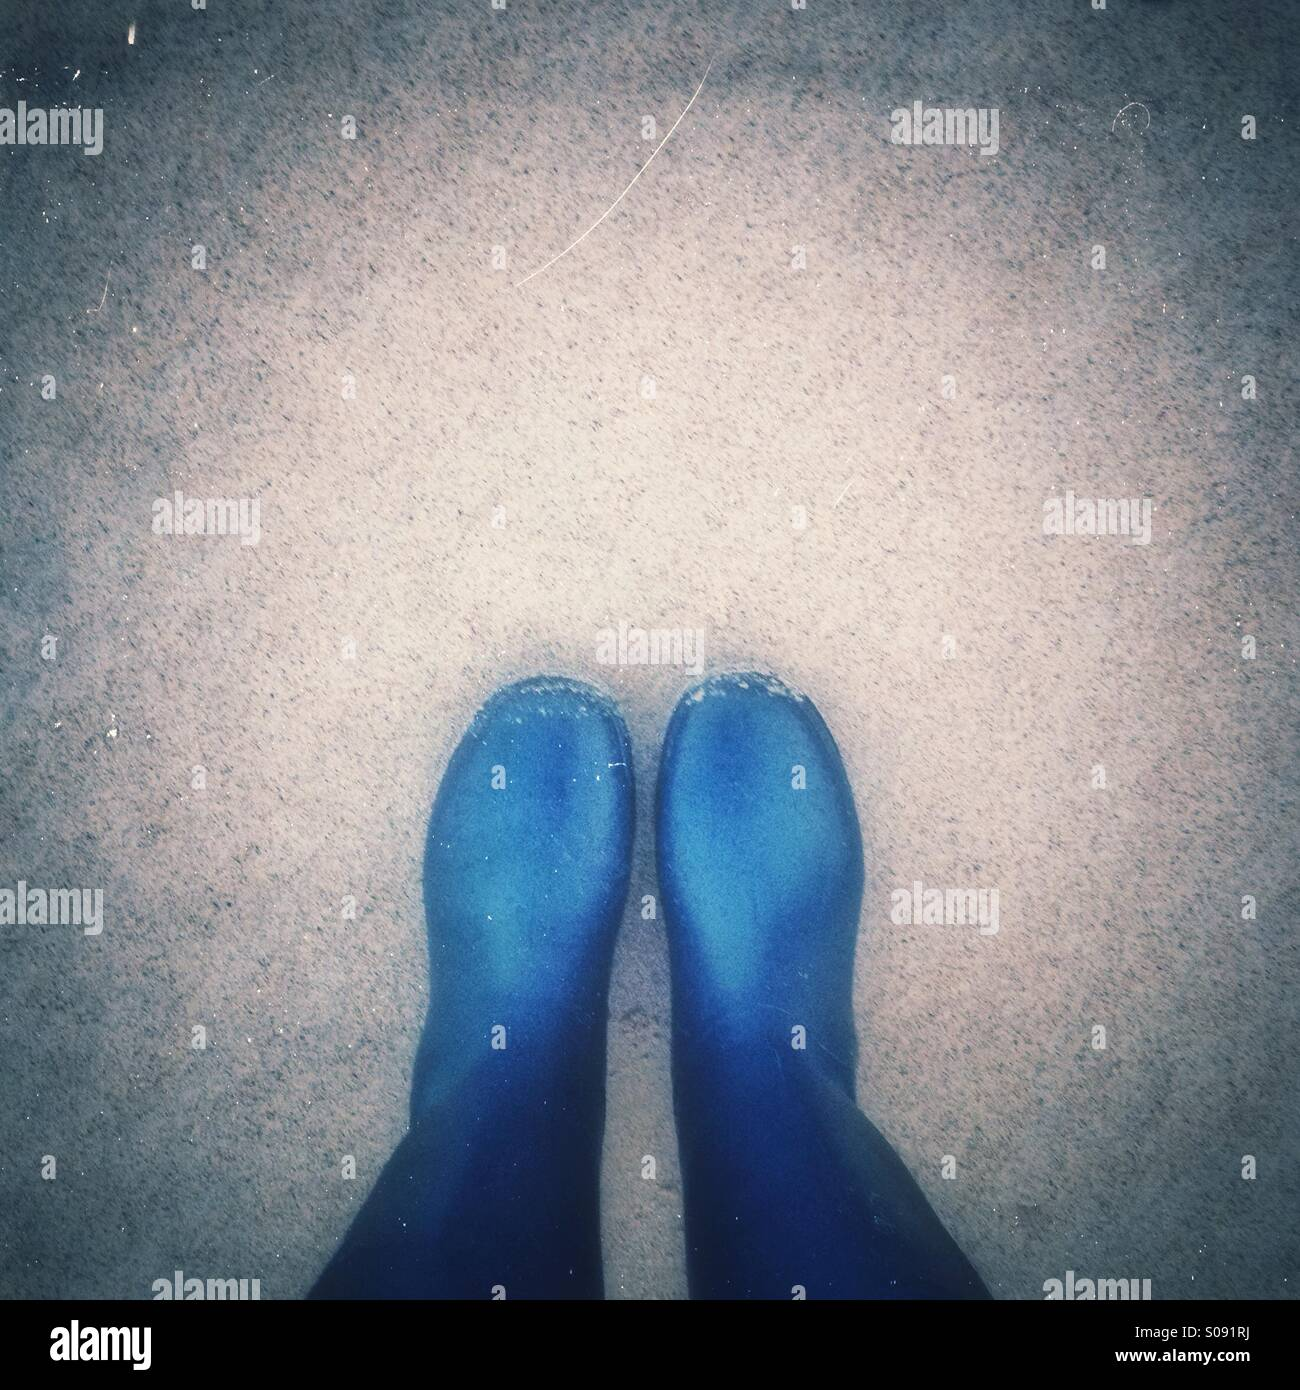 Looking down on wellies - Stock Image